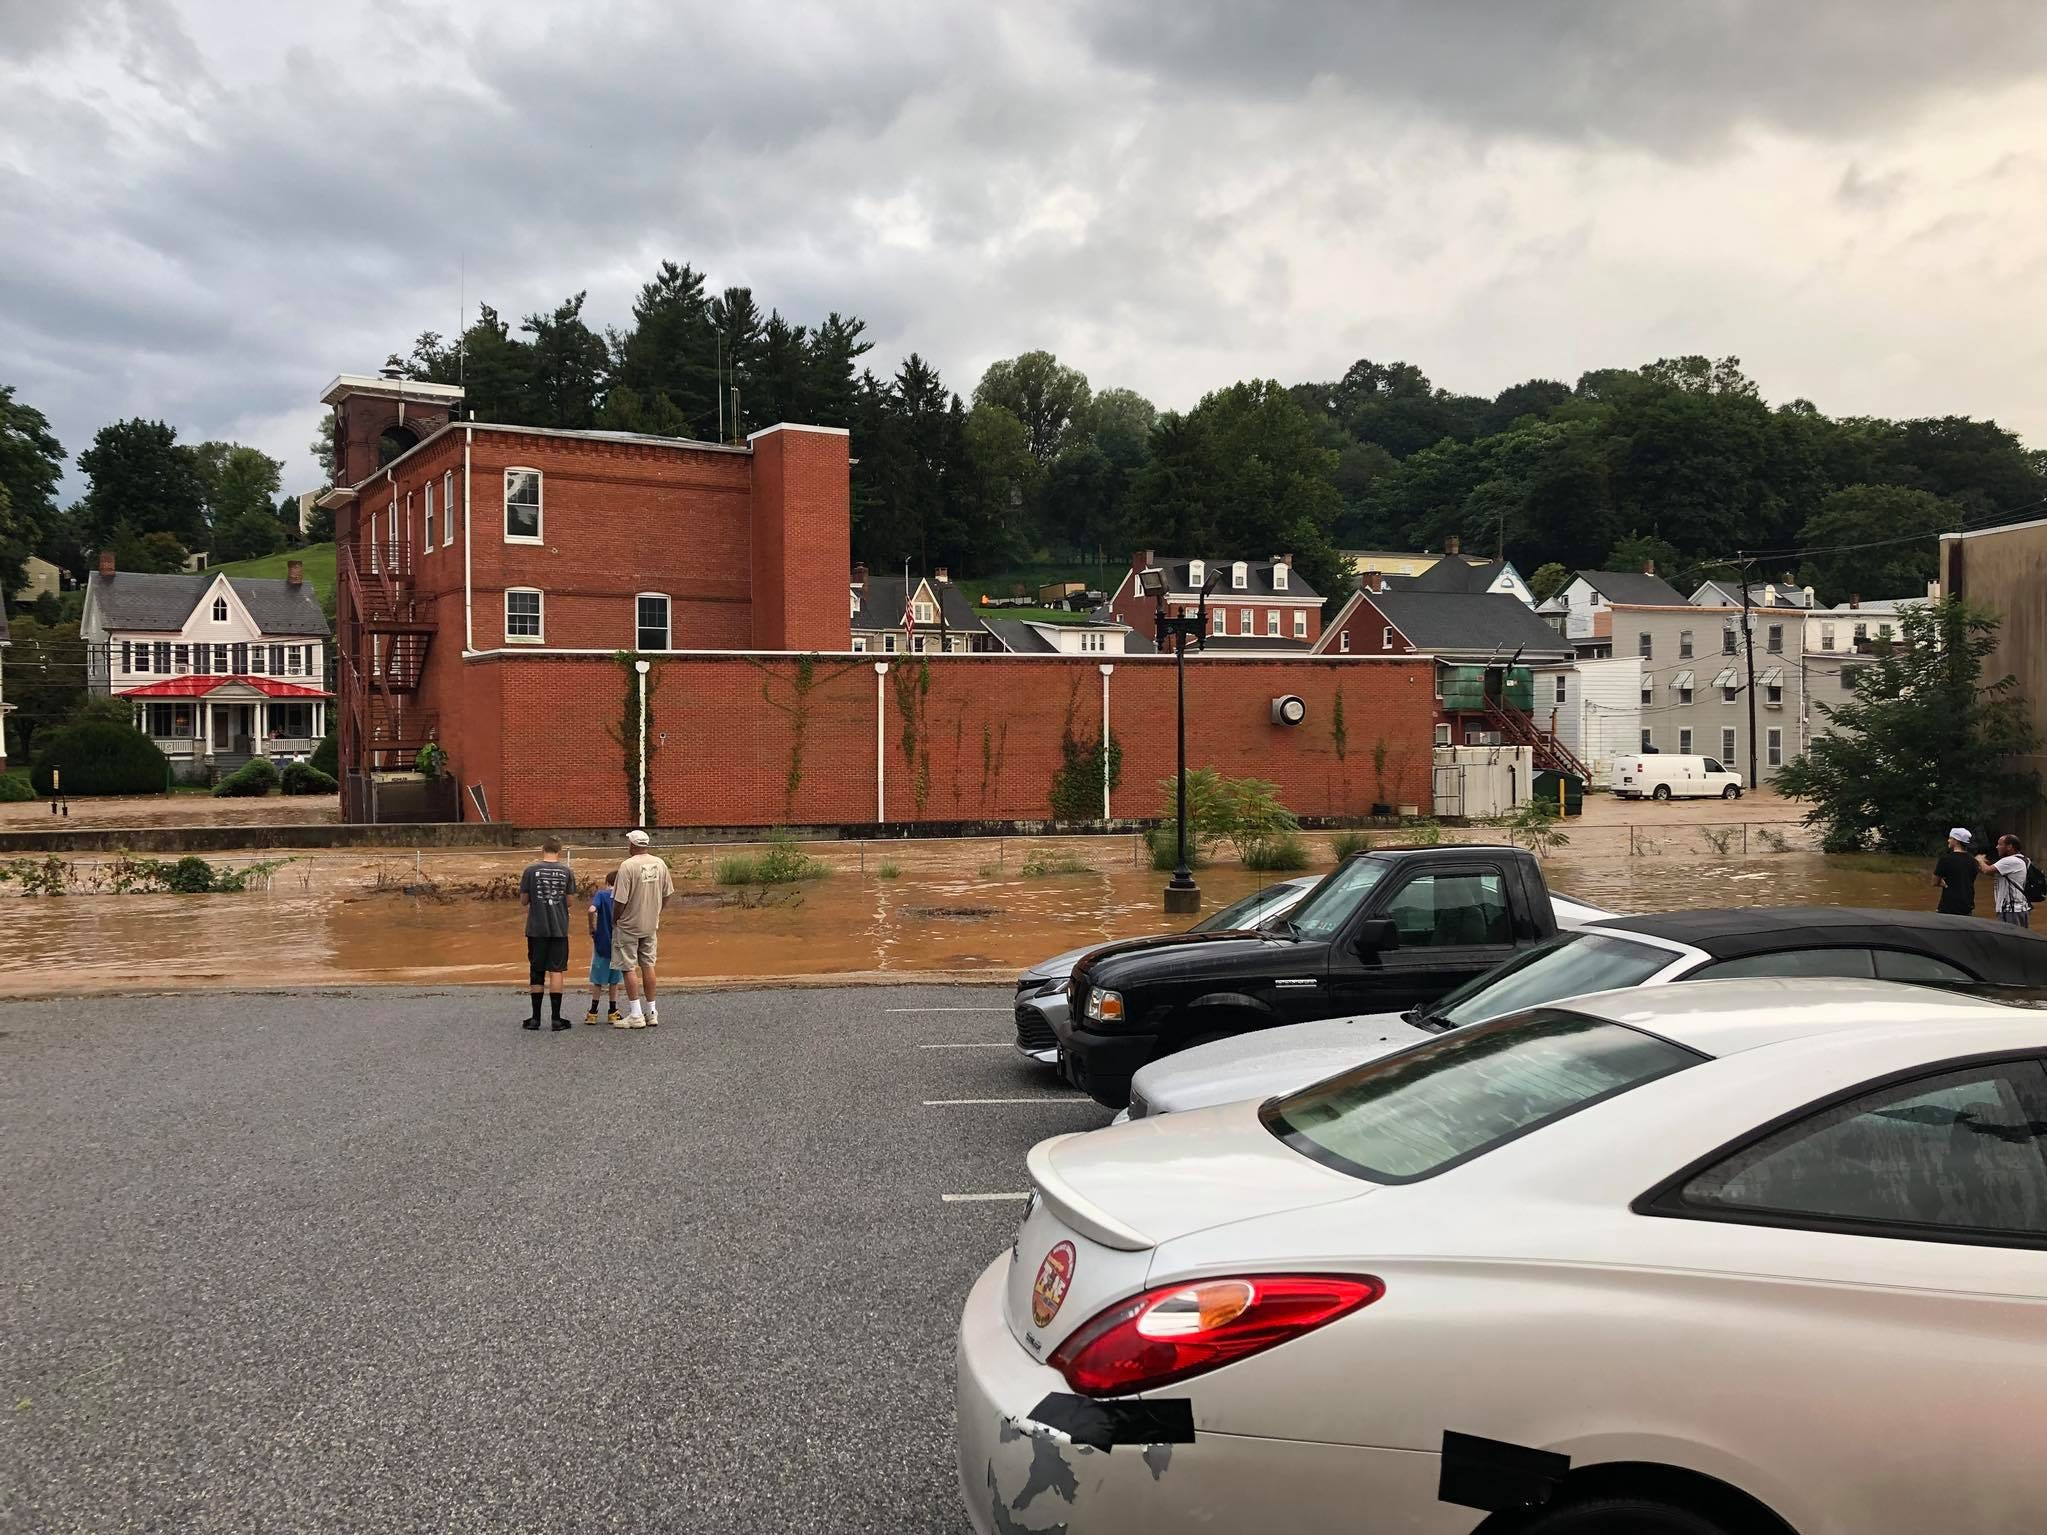 People all over York County have been capturing the devastating power of the storm that dumped many inches of rain over just a few hours on Friday, Aug. 31. Here is a collection of some of those images. Check back for updates as more become available, and share your best shots to York Daily Record's Facebook page.